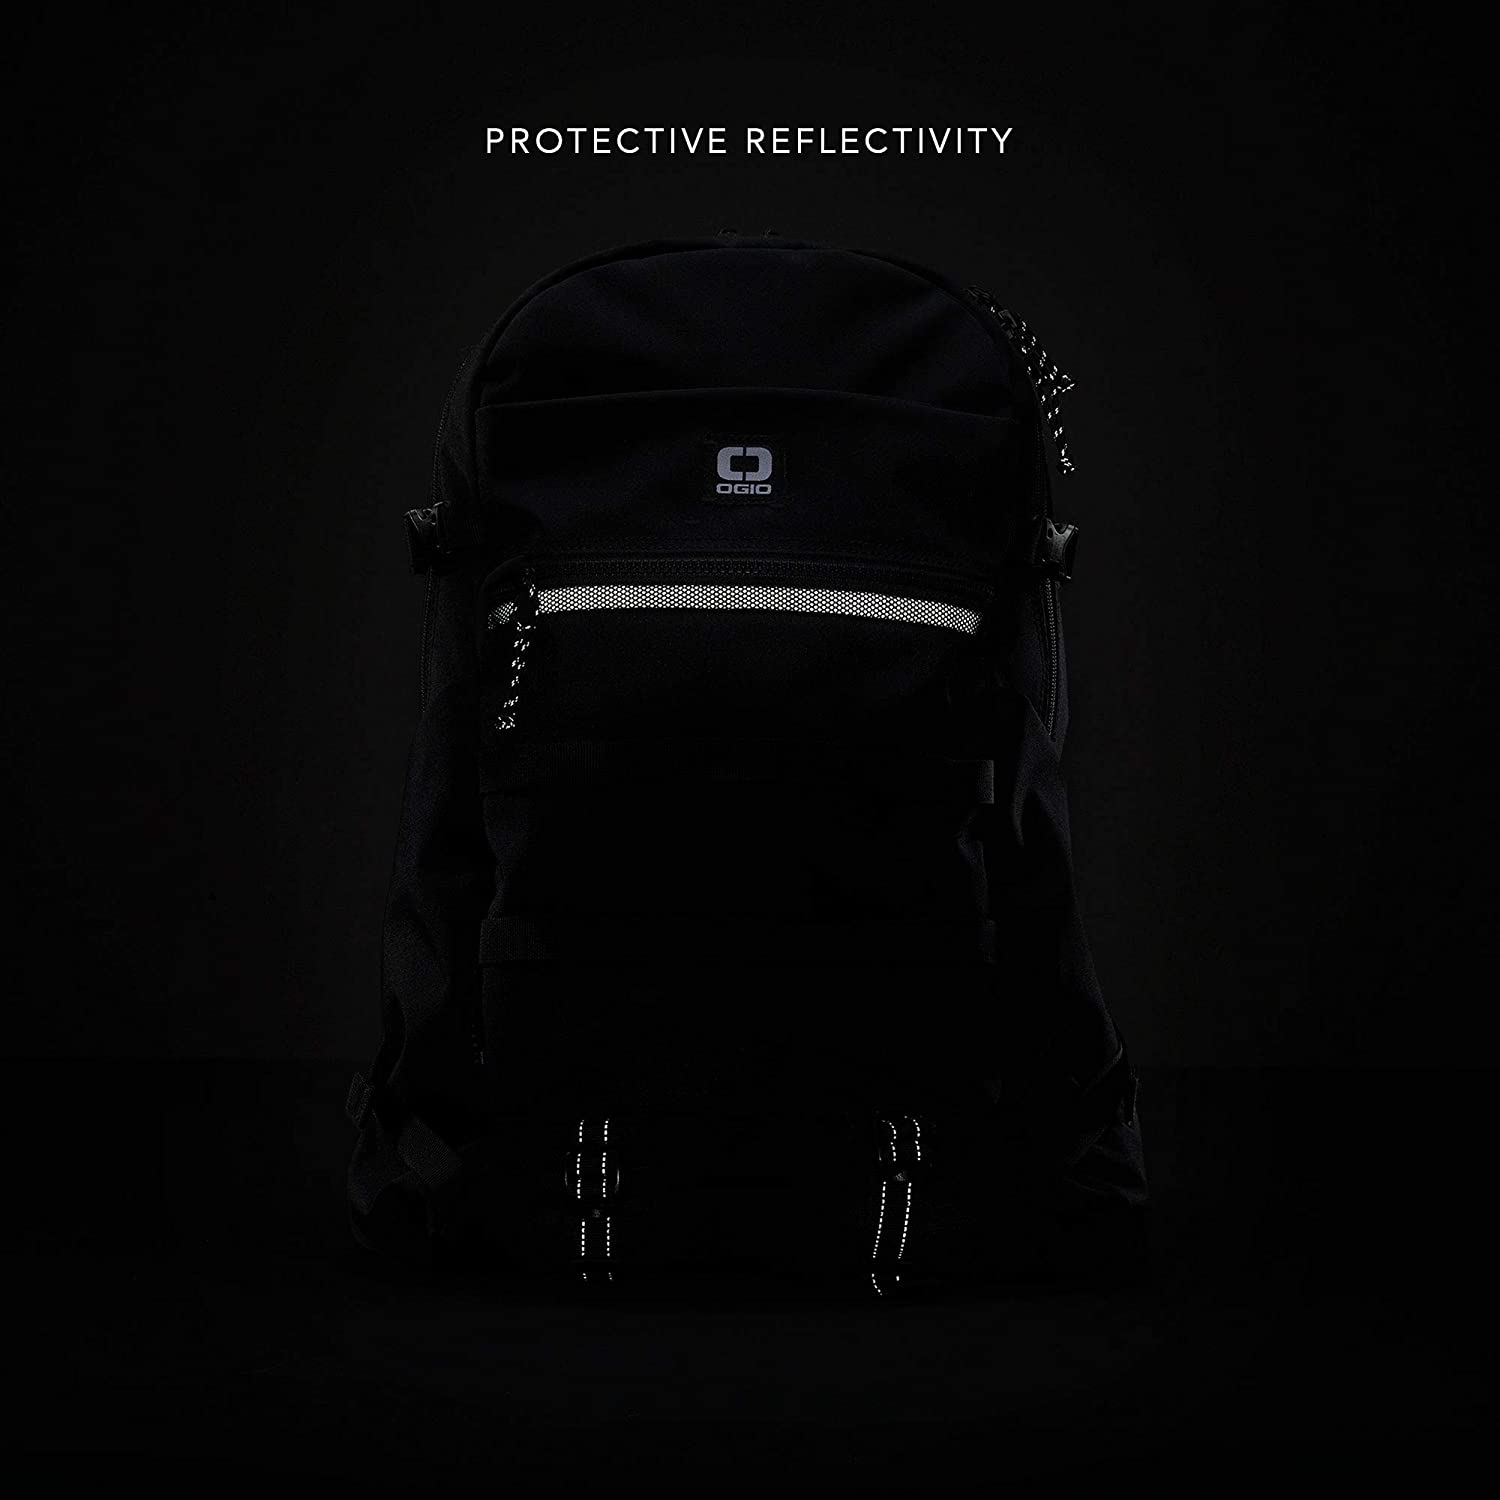 434abe3579 Amazon.com : OGIO ALPHA Convoy 320 Laptop Backpack, Black : Sports &  Outdoors